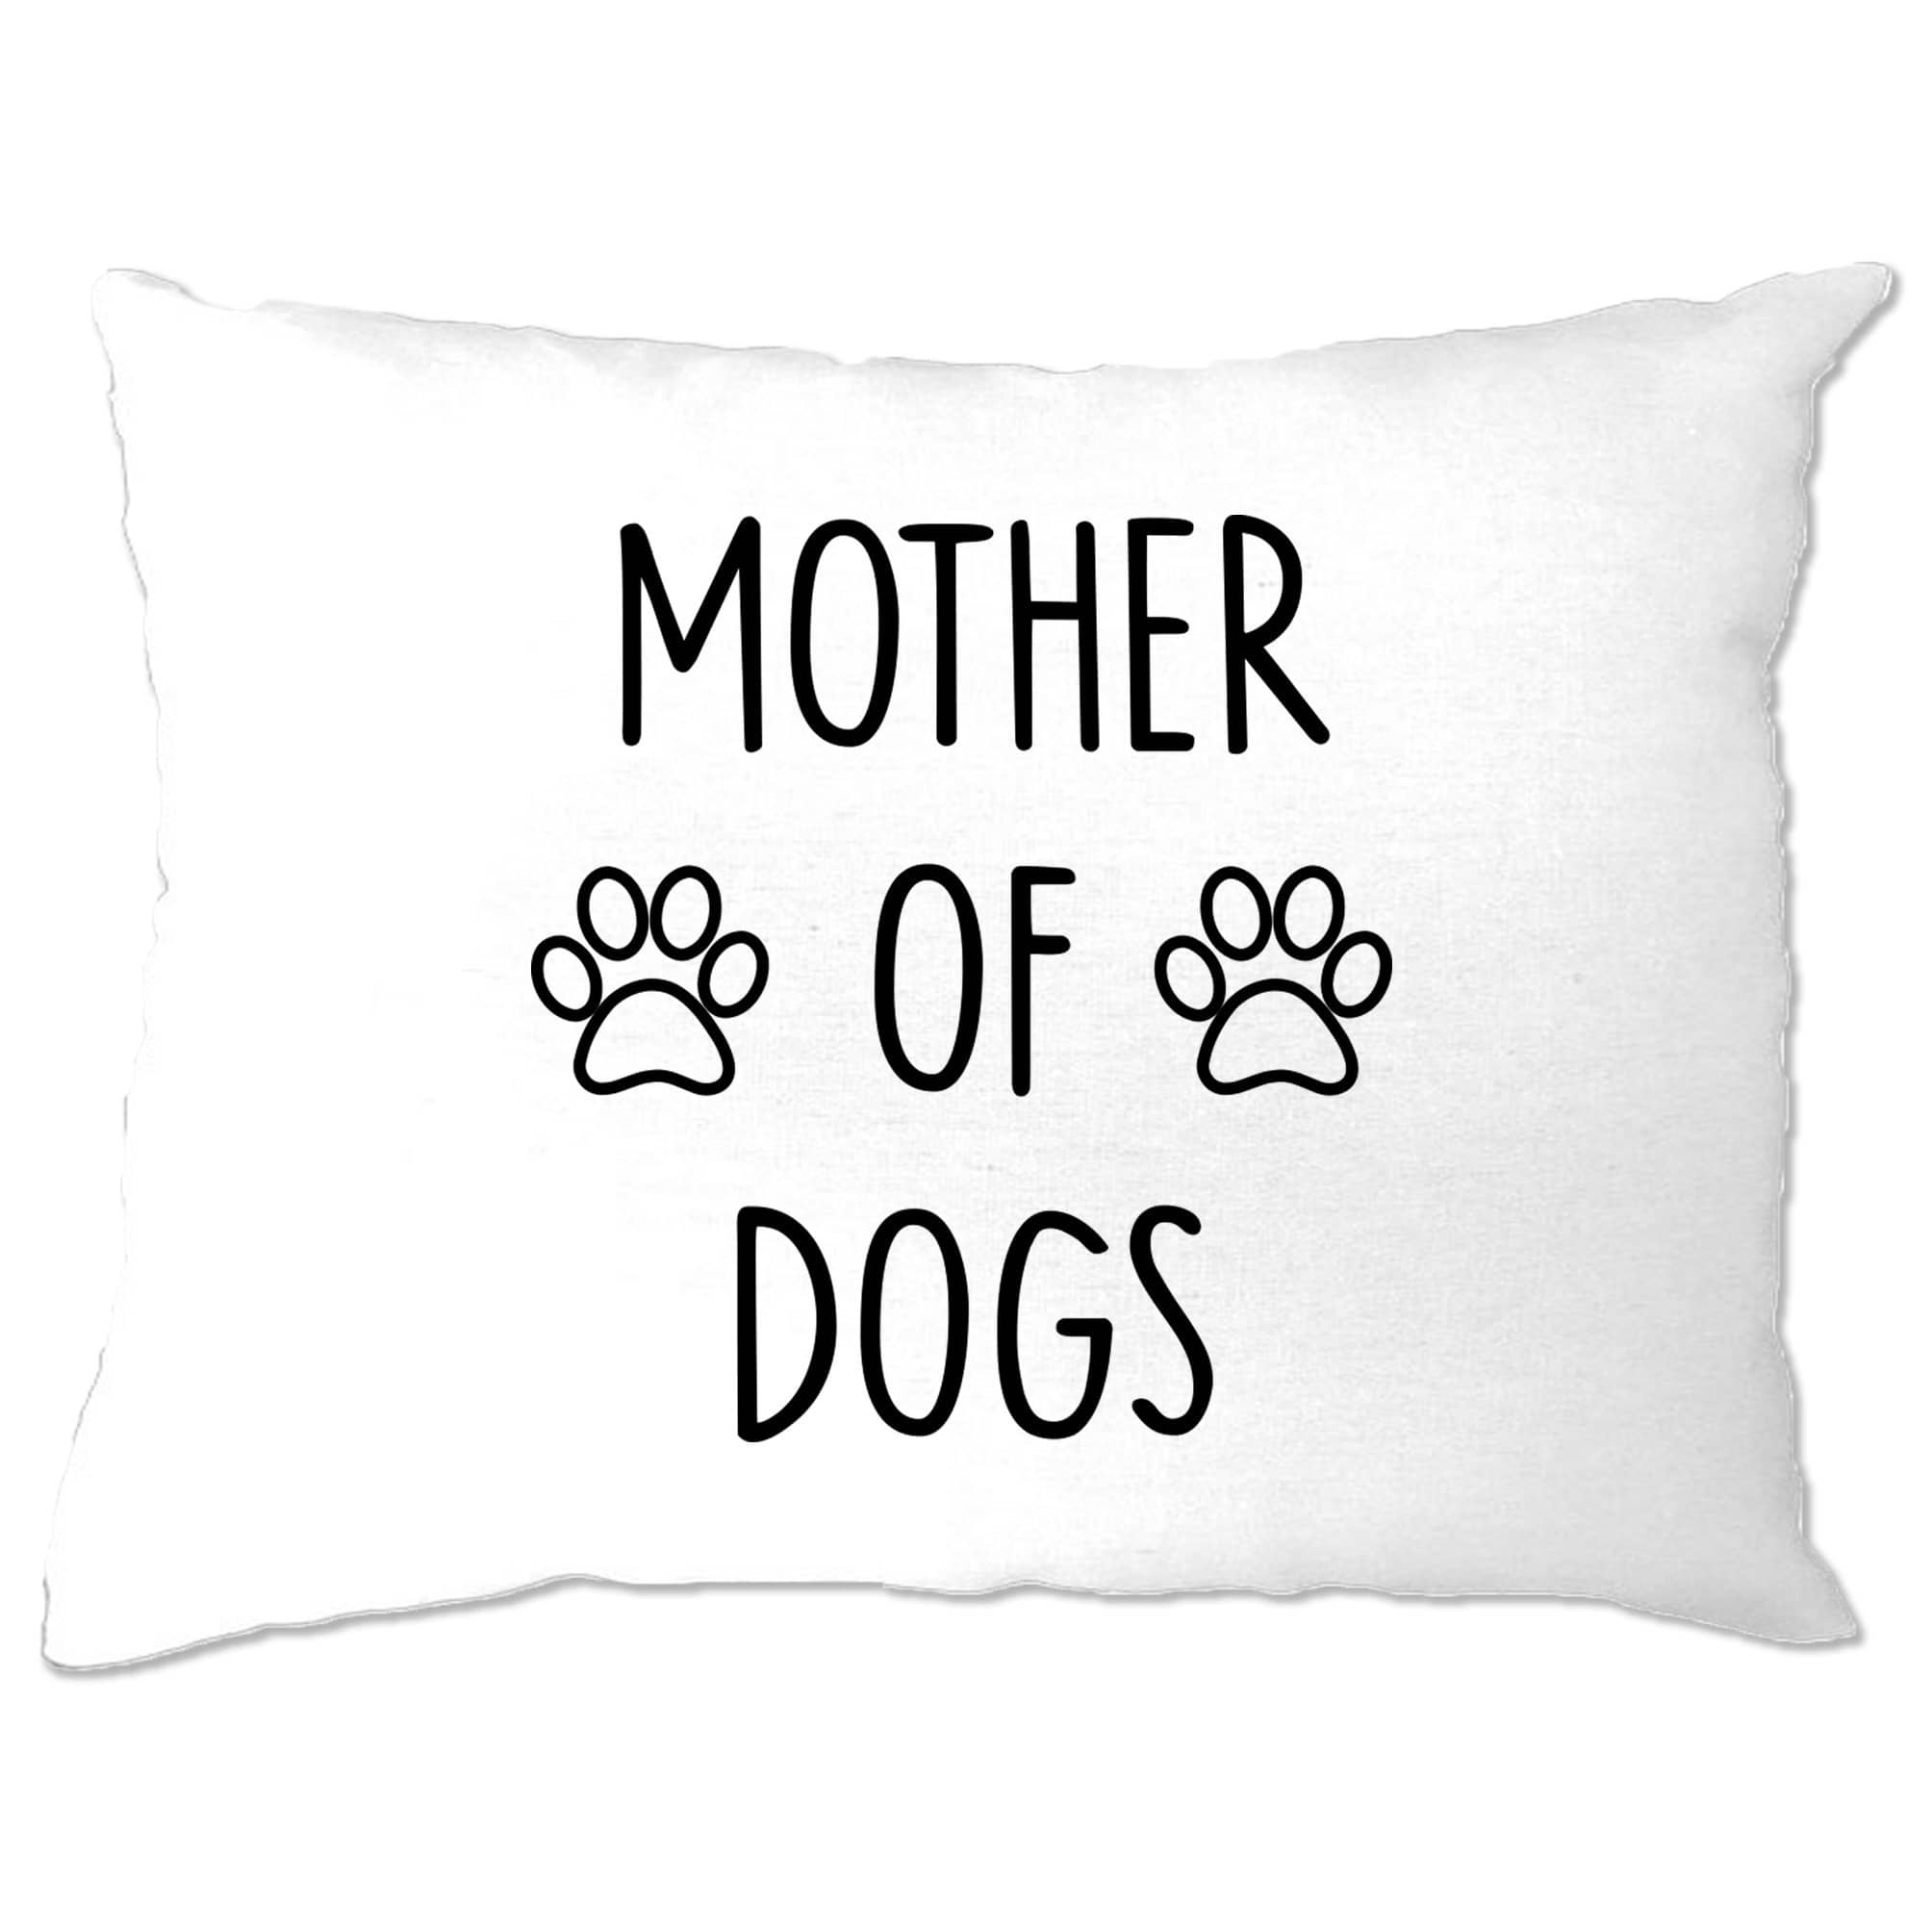 Novelty Pet Pillow Case Mother Of Dogs Slogan